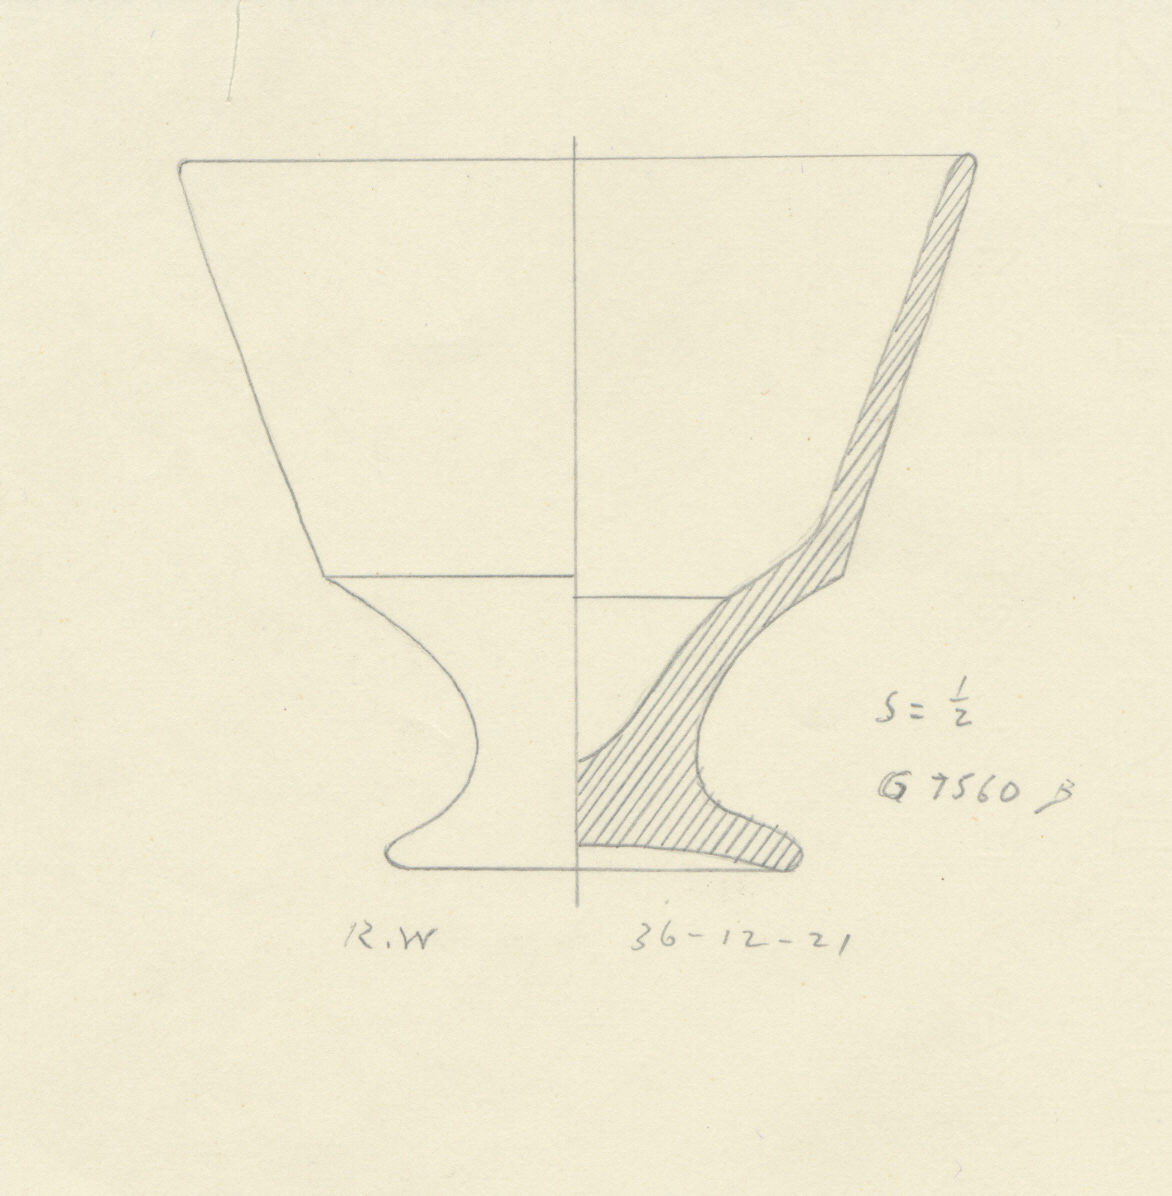 Drawings: G 7560, Shaft B: pottery, footed cup